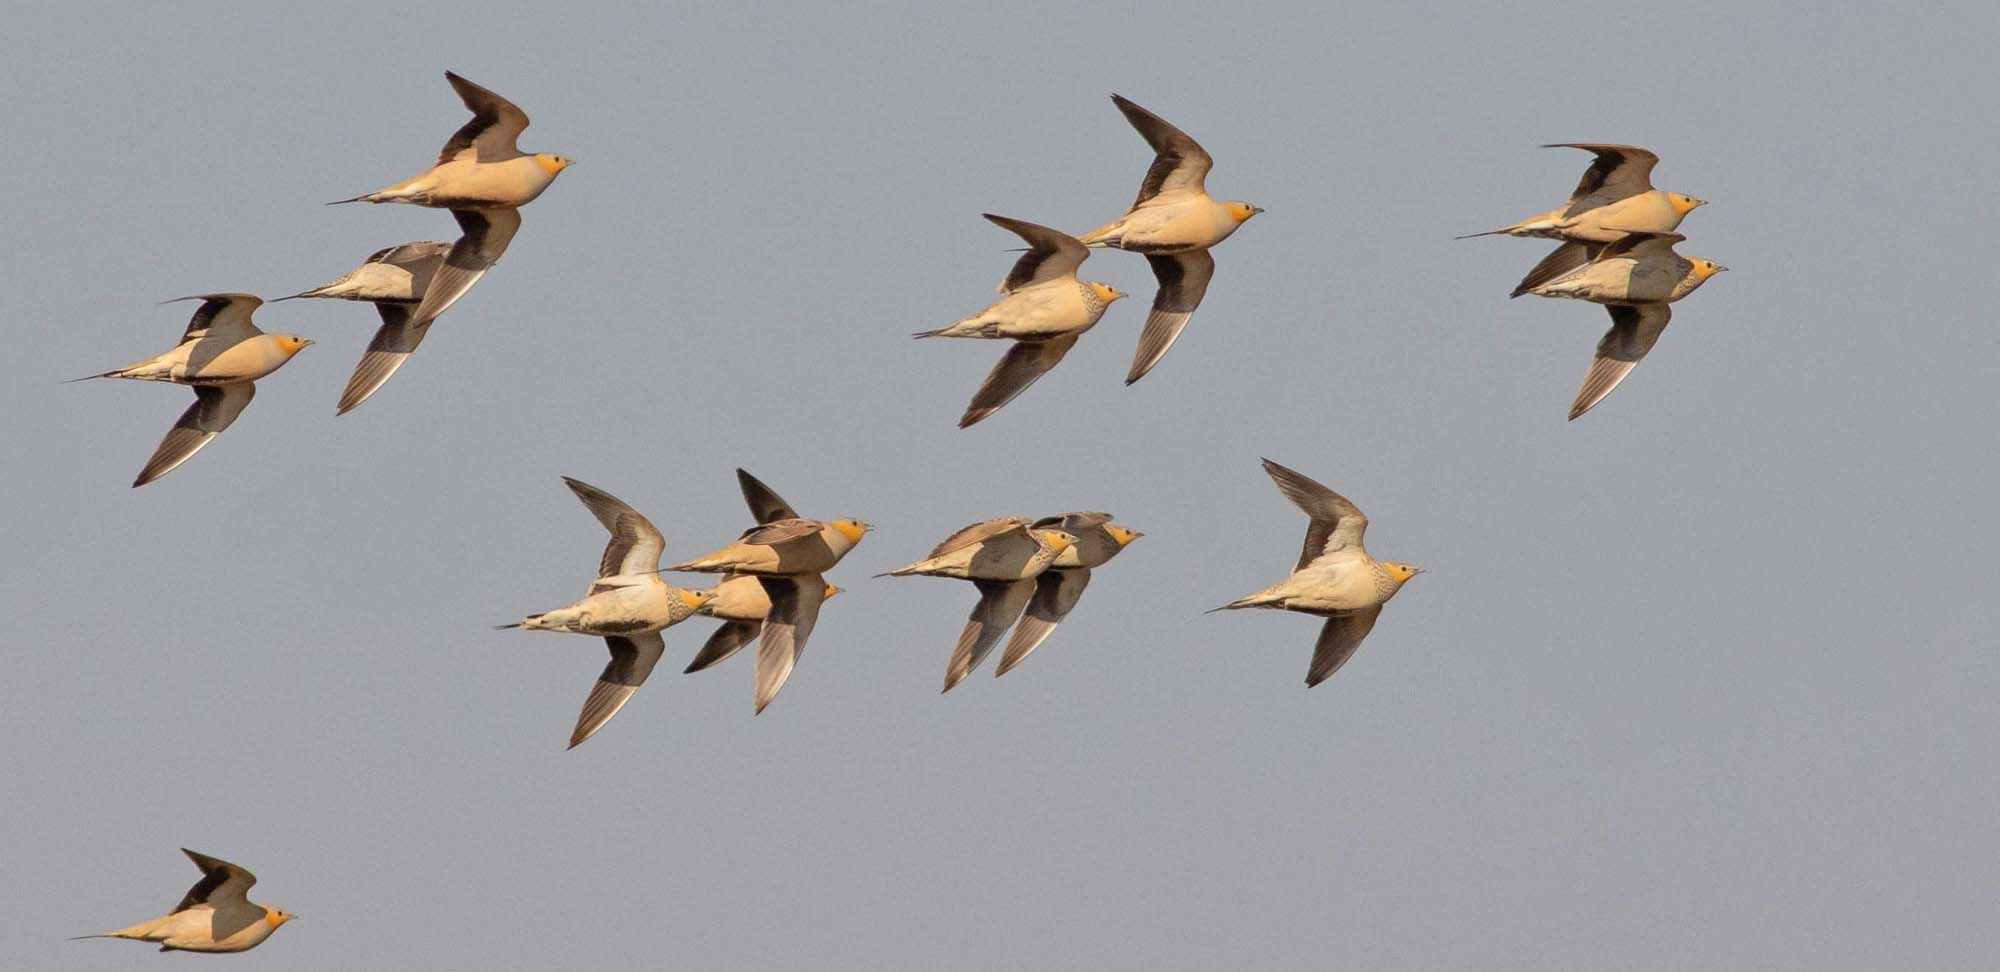 Spotted Sandgrouse Field Guides Birding Tours Israel